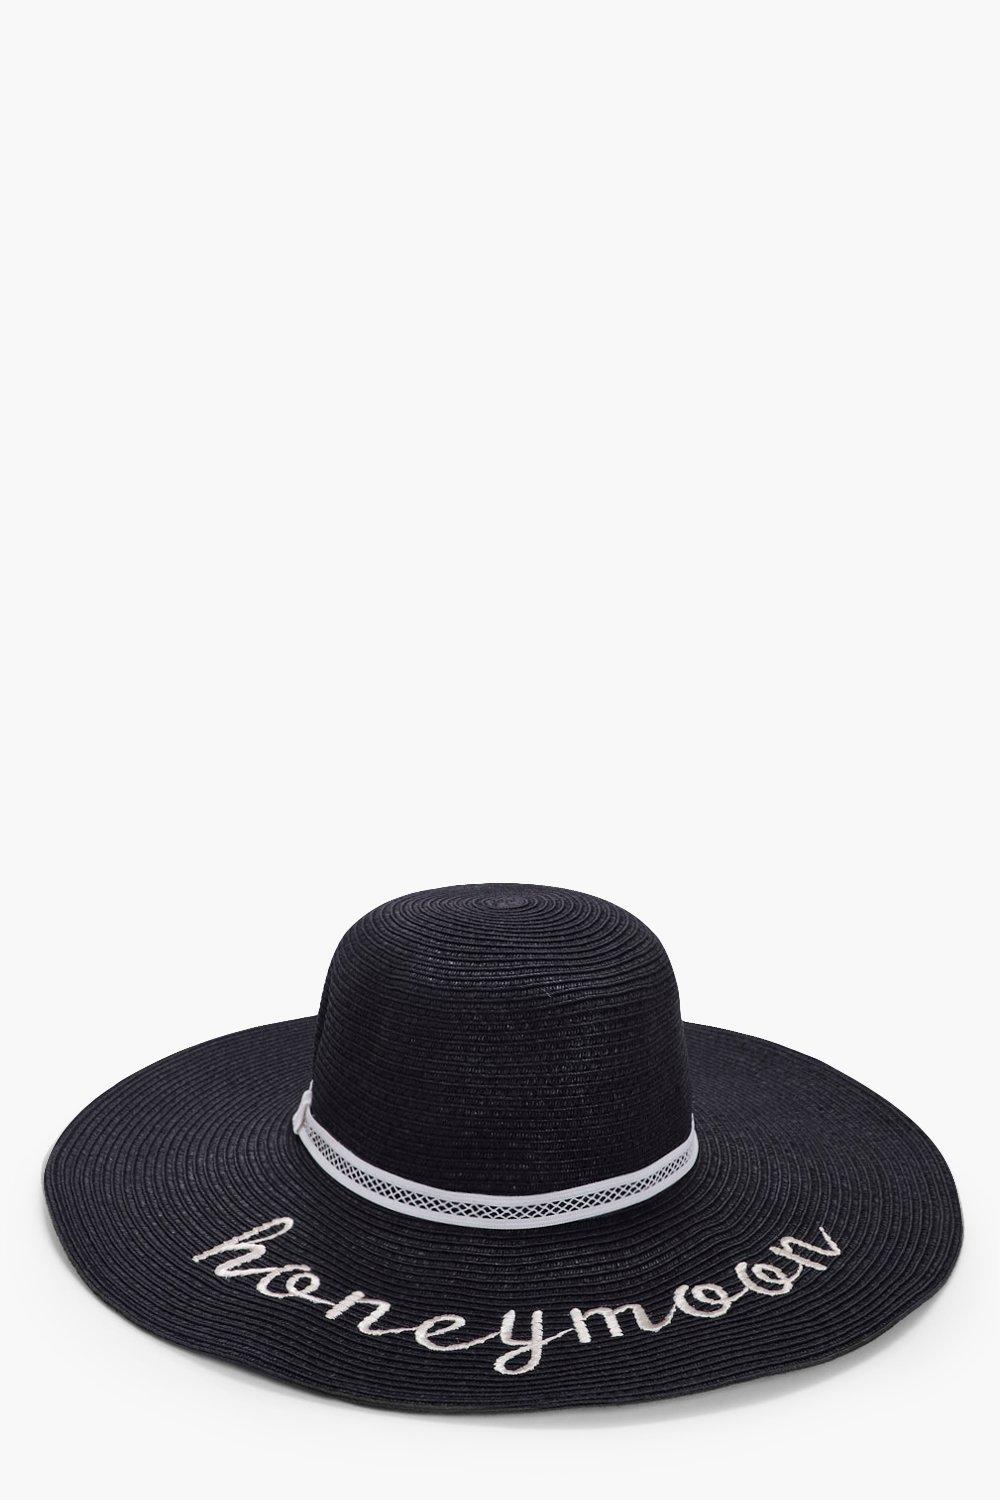 Honeymoon Straw Floppy Hat - black - Megan Honeymo